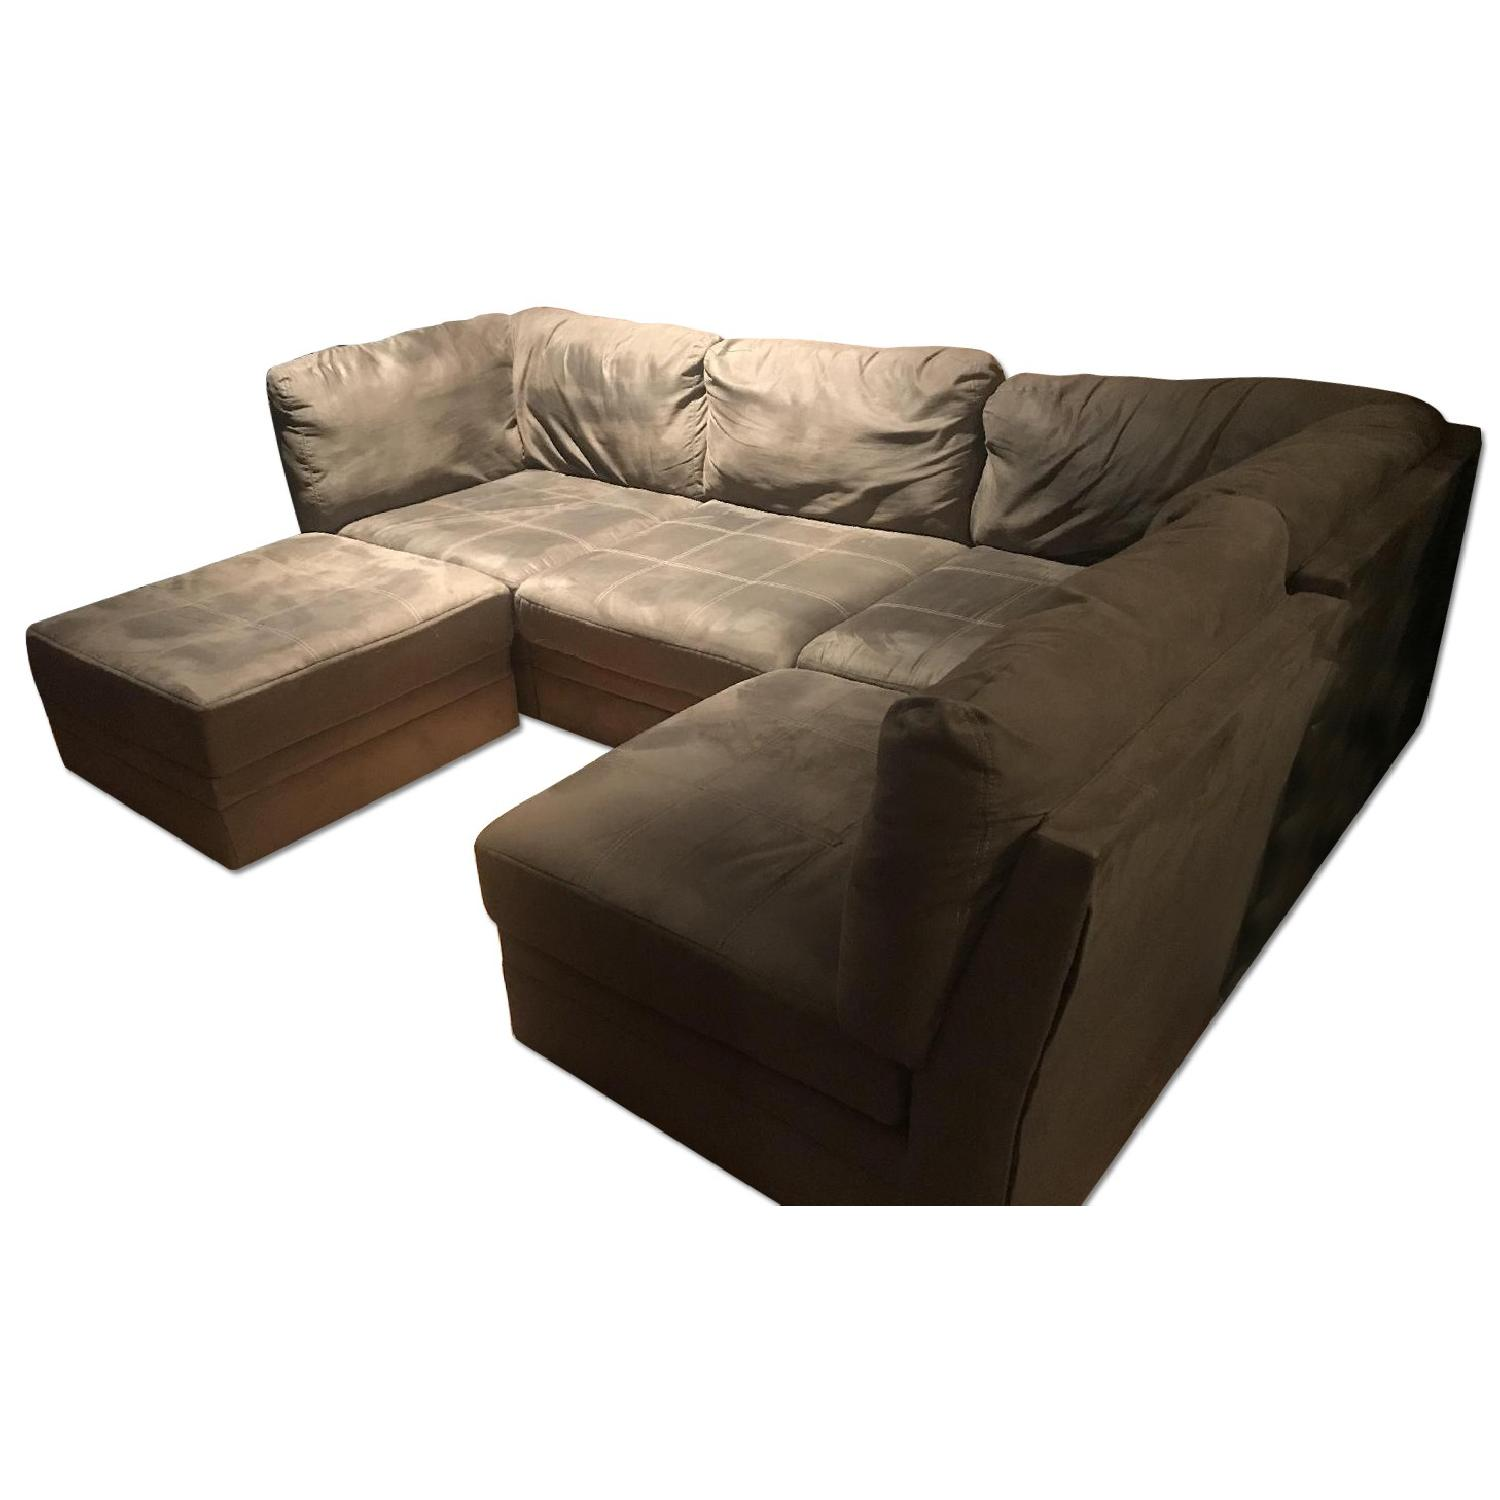 Montreal 5-Piece Sectional Sofa